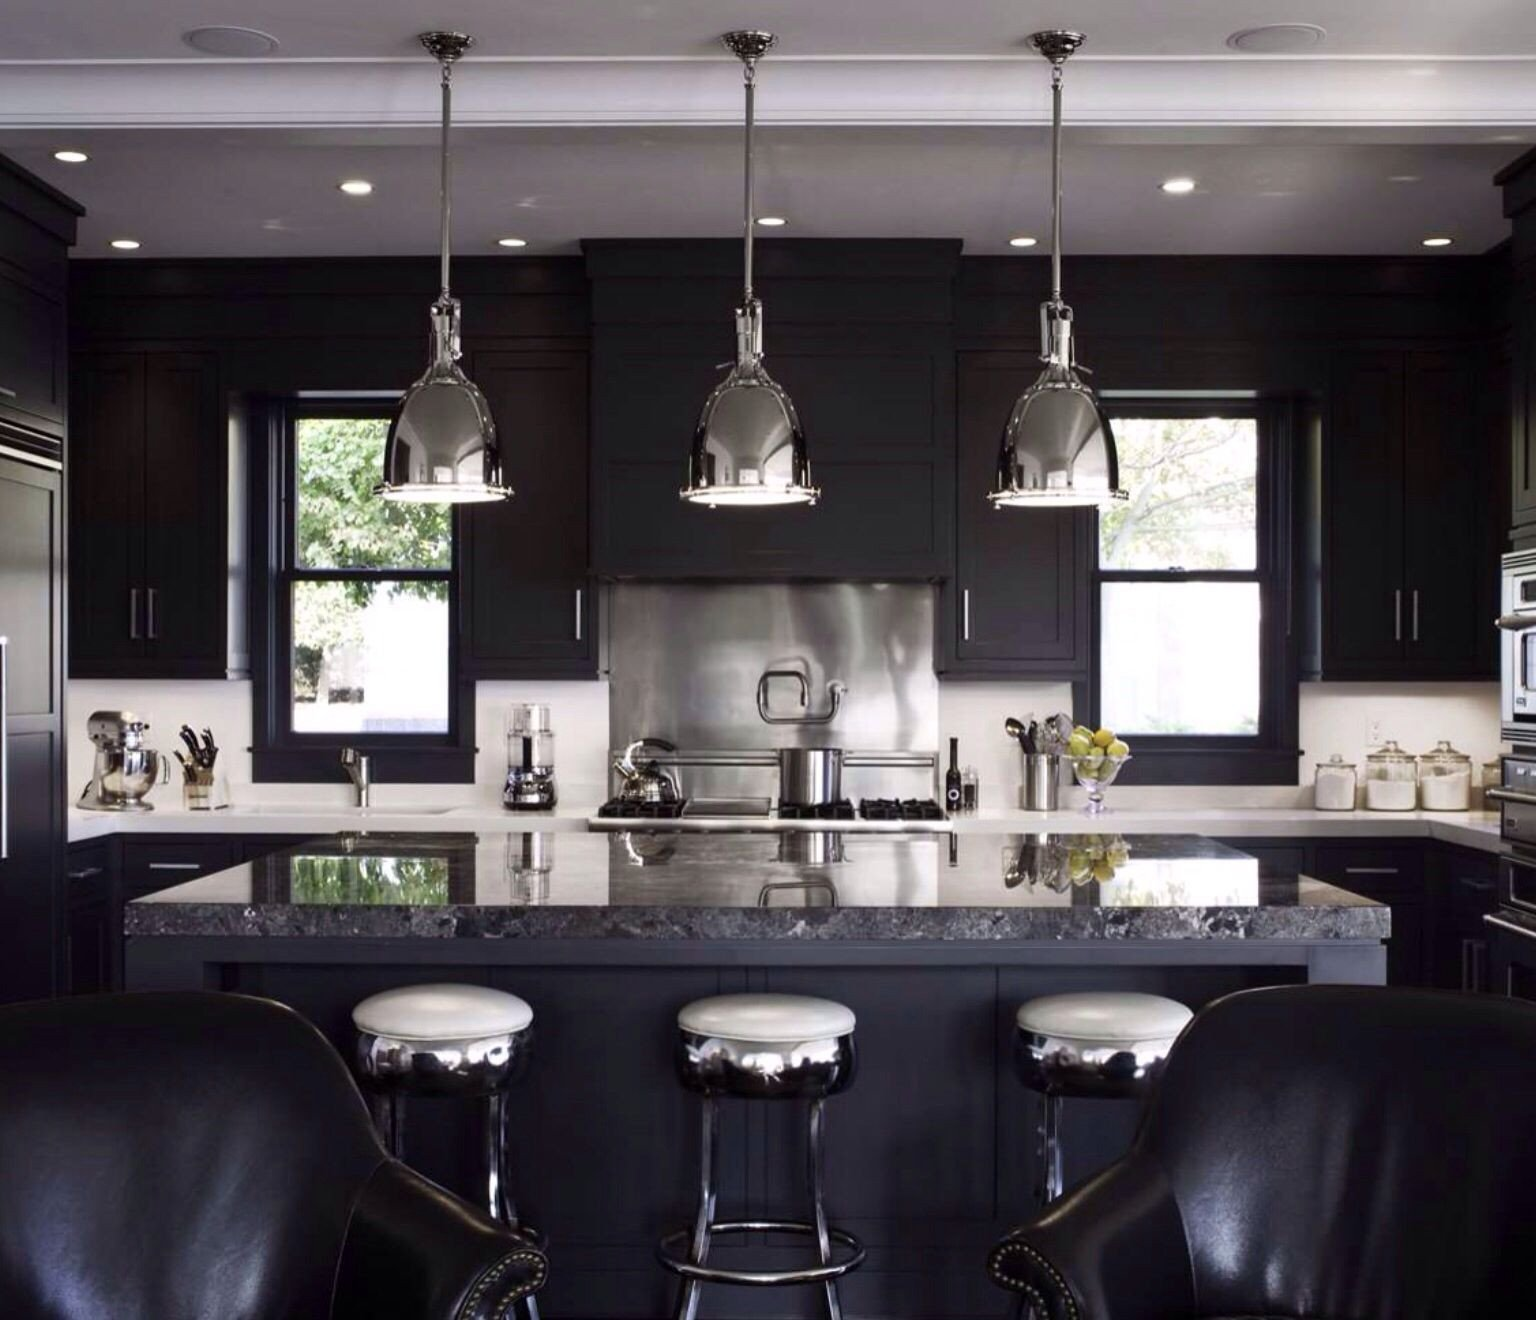 Black and Silver Kitchen Decor New Black and Silver Kitchen Home Decor In 2019